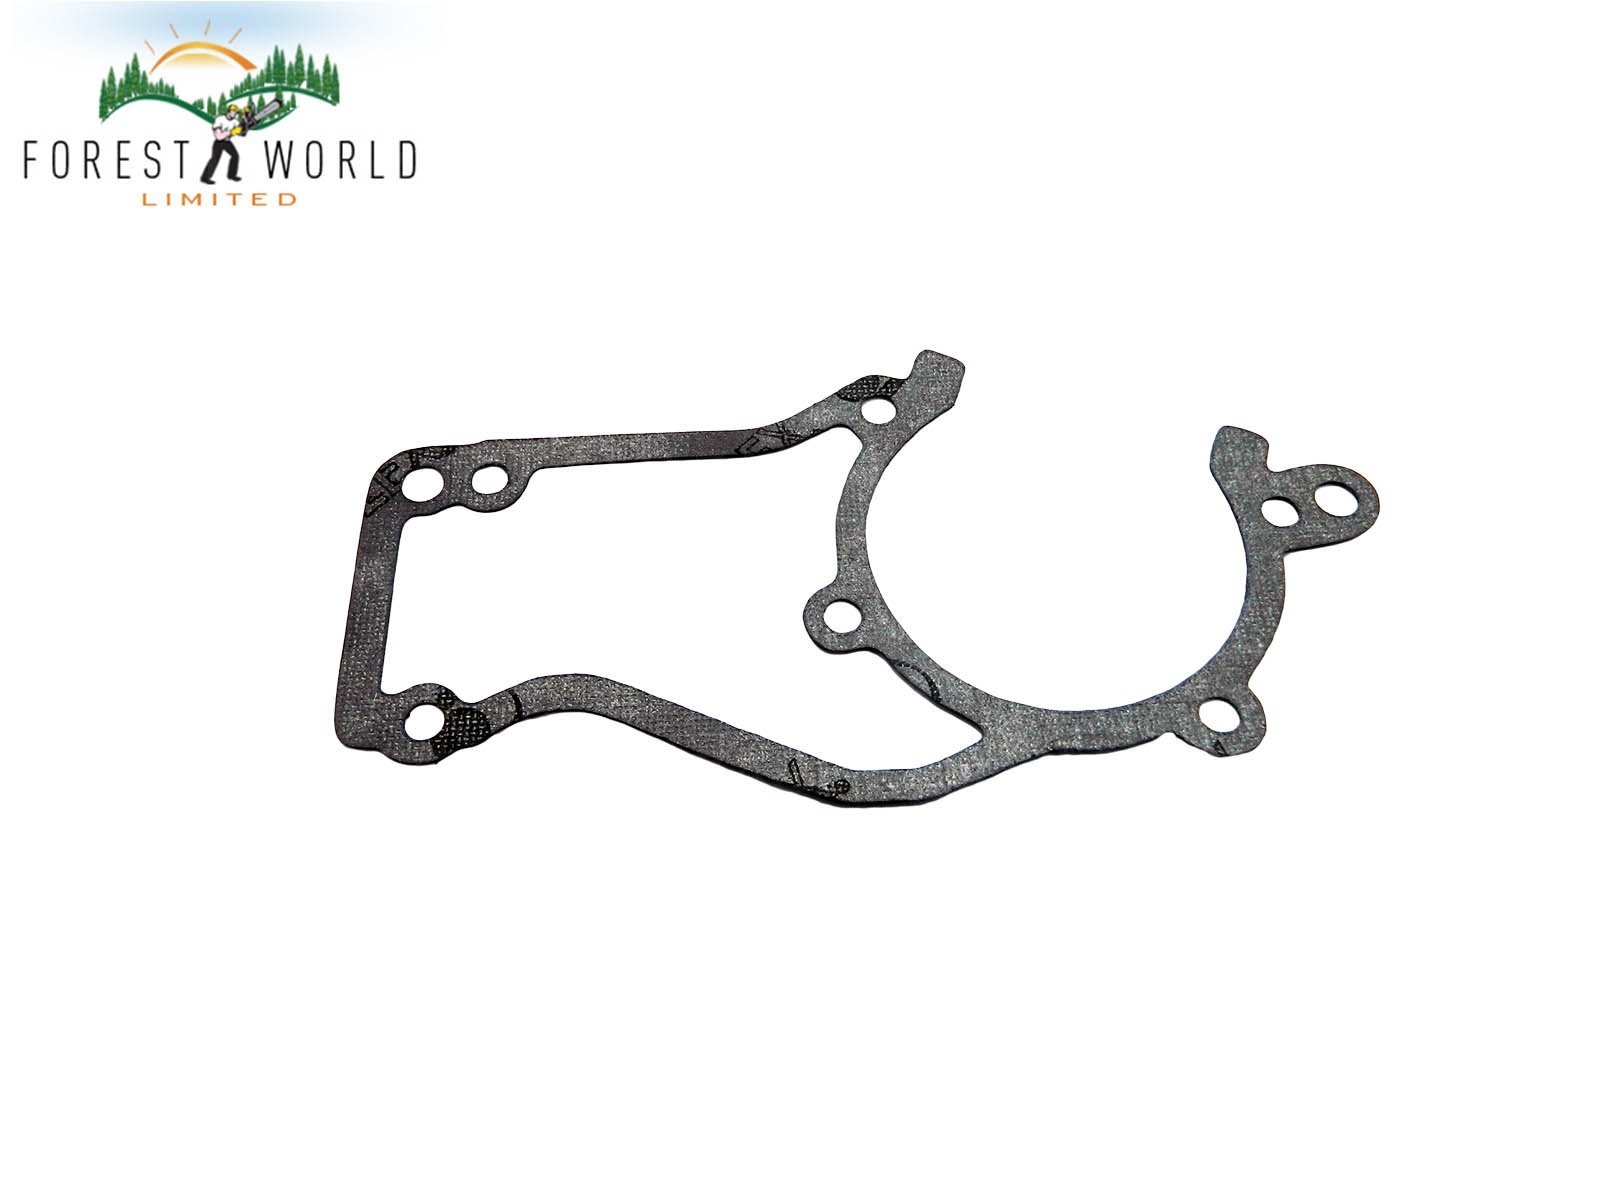 Crankcase crankshaft gasket for STIHL 028 AV chainsaws